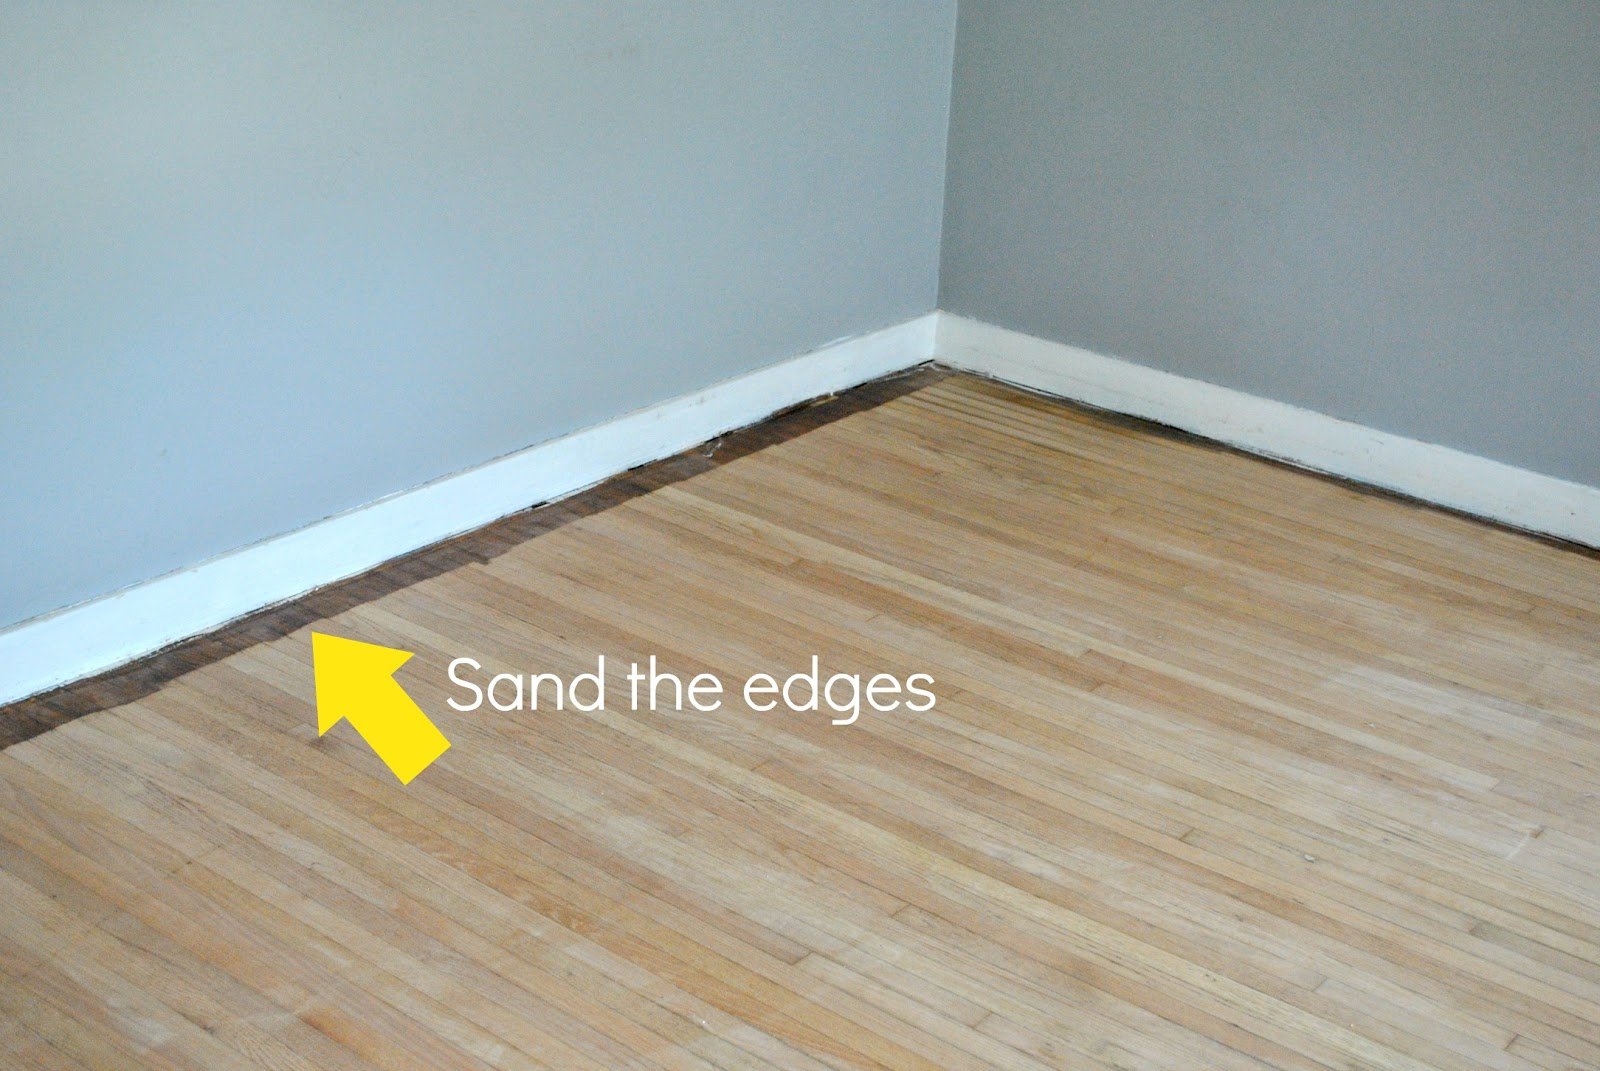 How to remove carpet and refinish wood floors part 1 classy clutter you can see there is a few inches of stain left on the outer perimeter of the flooring this is where the drum sander could not reach so you will have to solutioingenieria Image collections